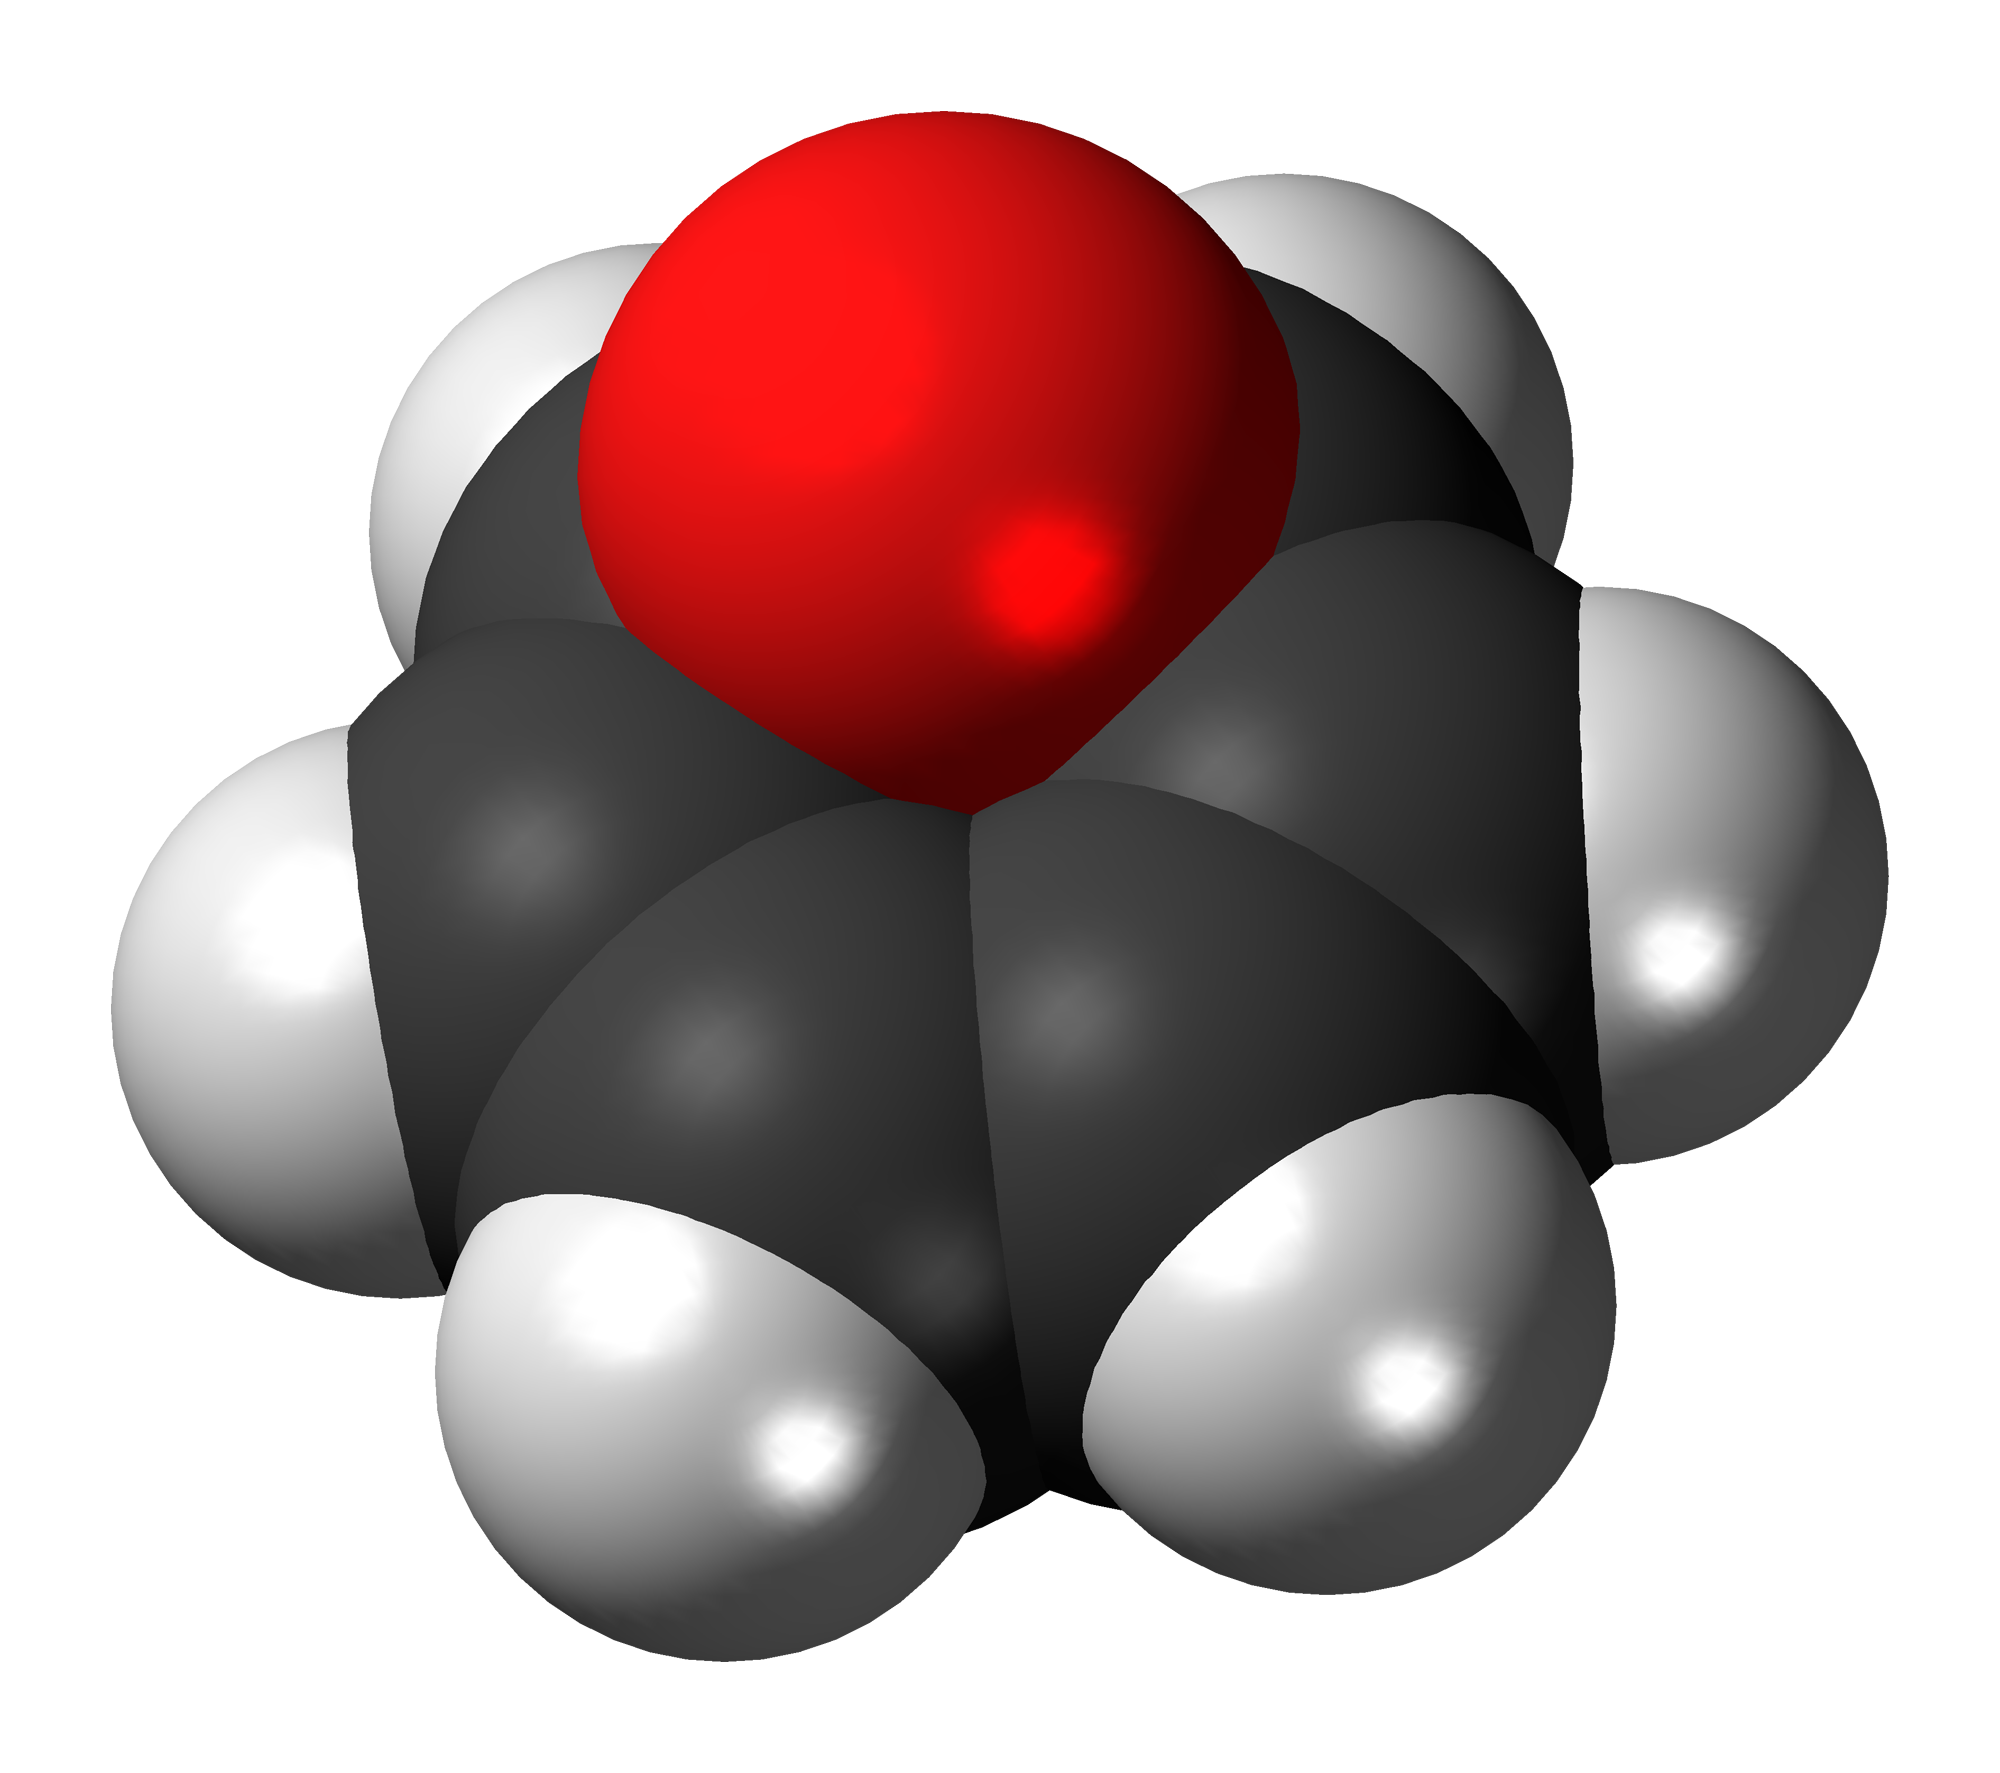 File:Benzene-oxide-3D-spacefill.png - Wikimedia Commons